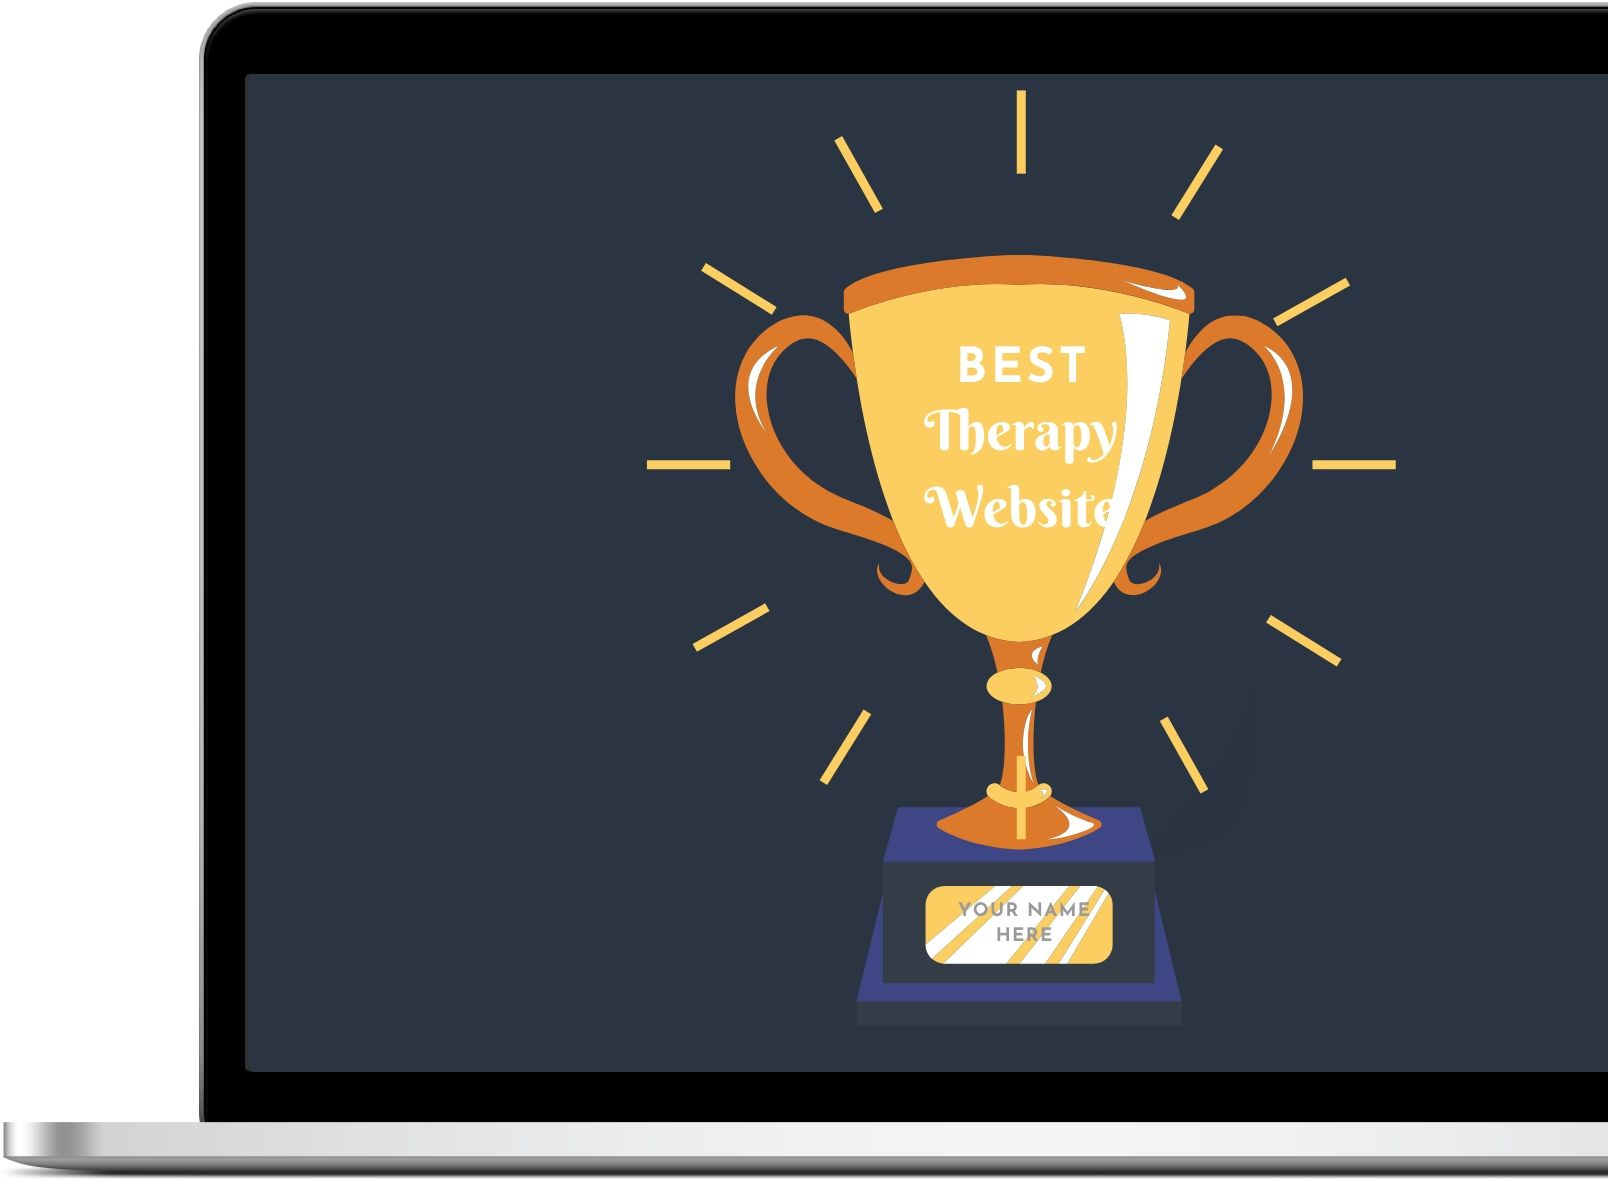 Best Therapy Website Award on Laptop Screen